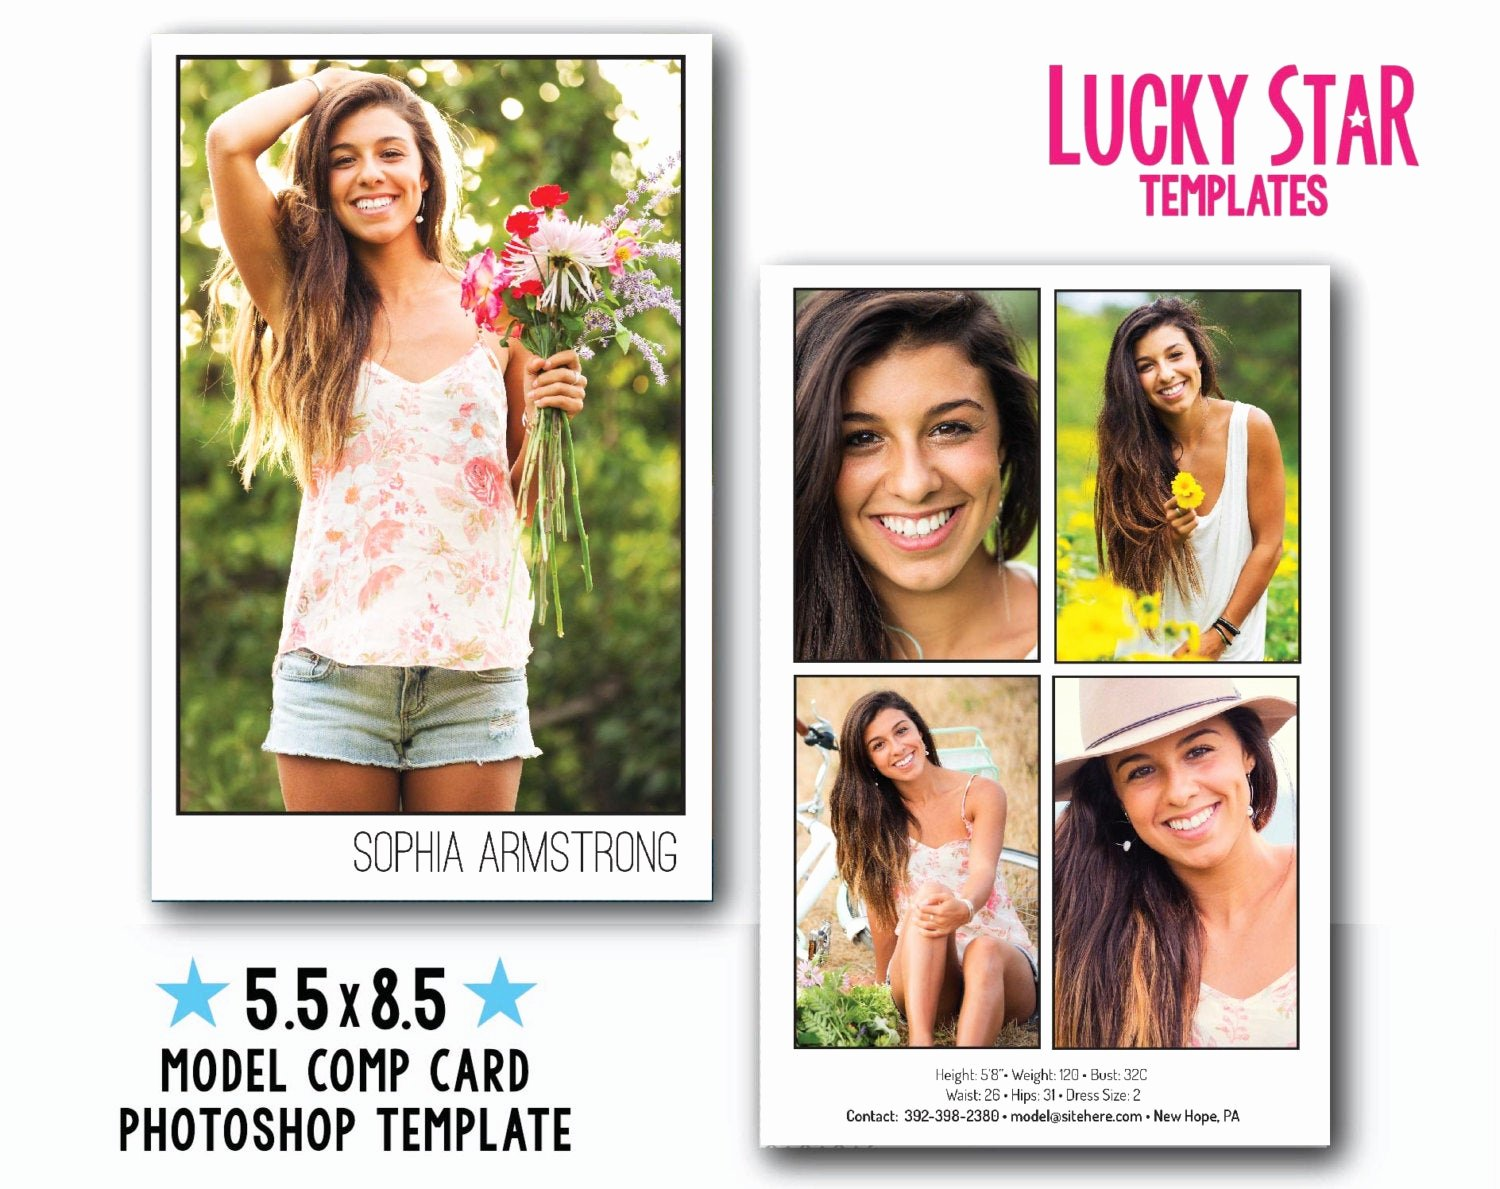 Model Comp Card Template Lovely Customizable Digital Model P Card Power Portraits